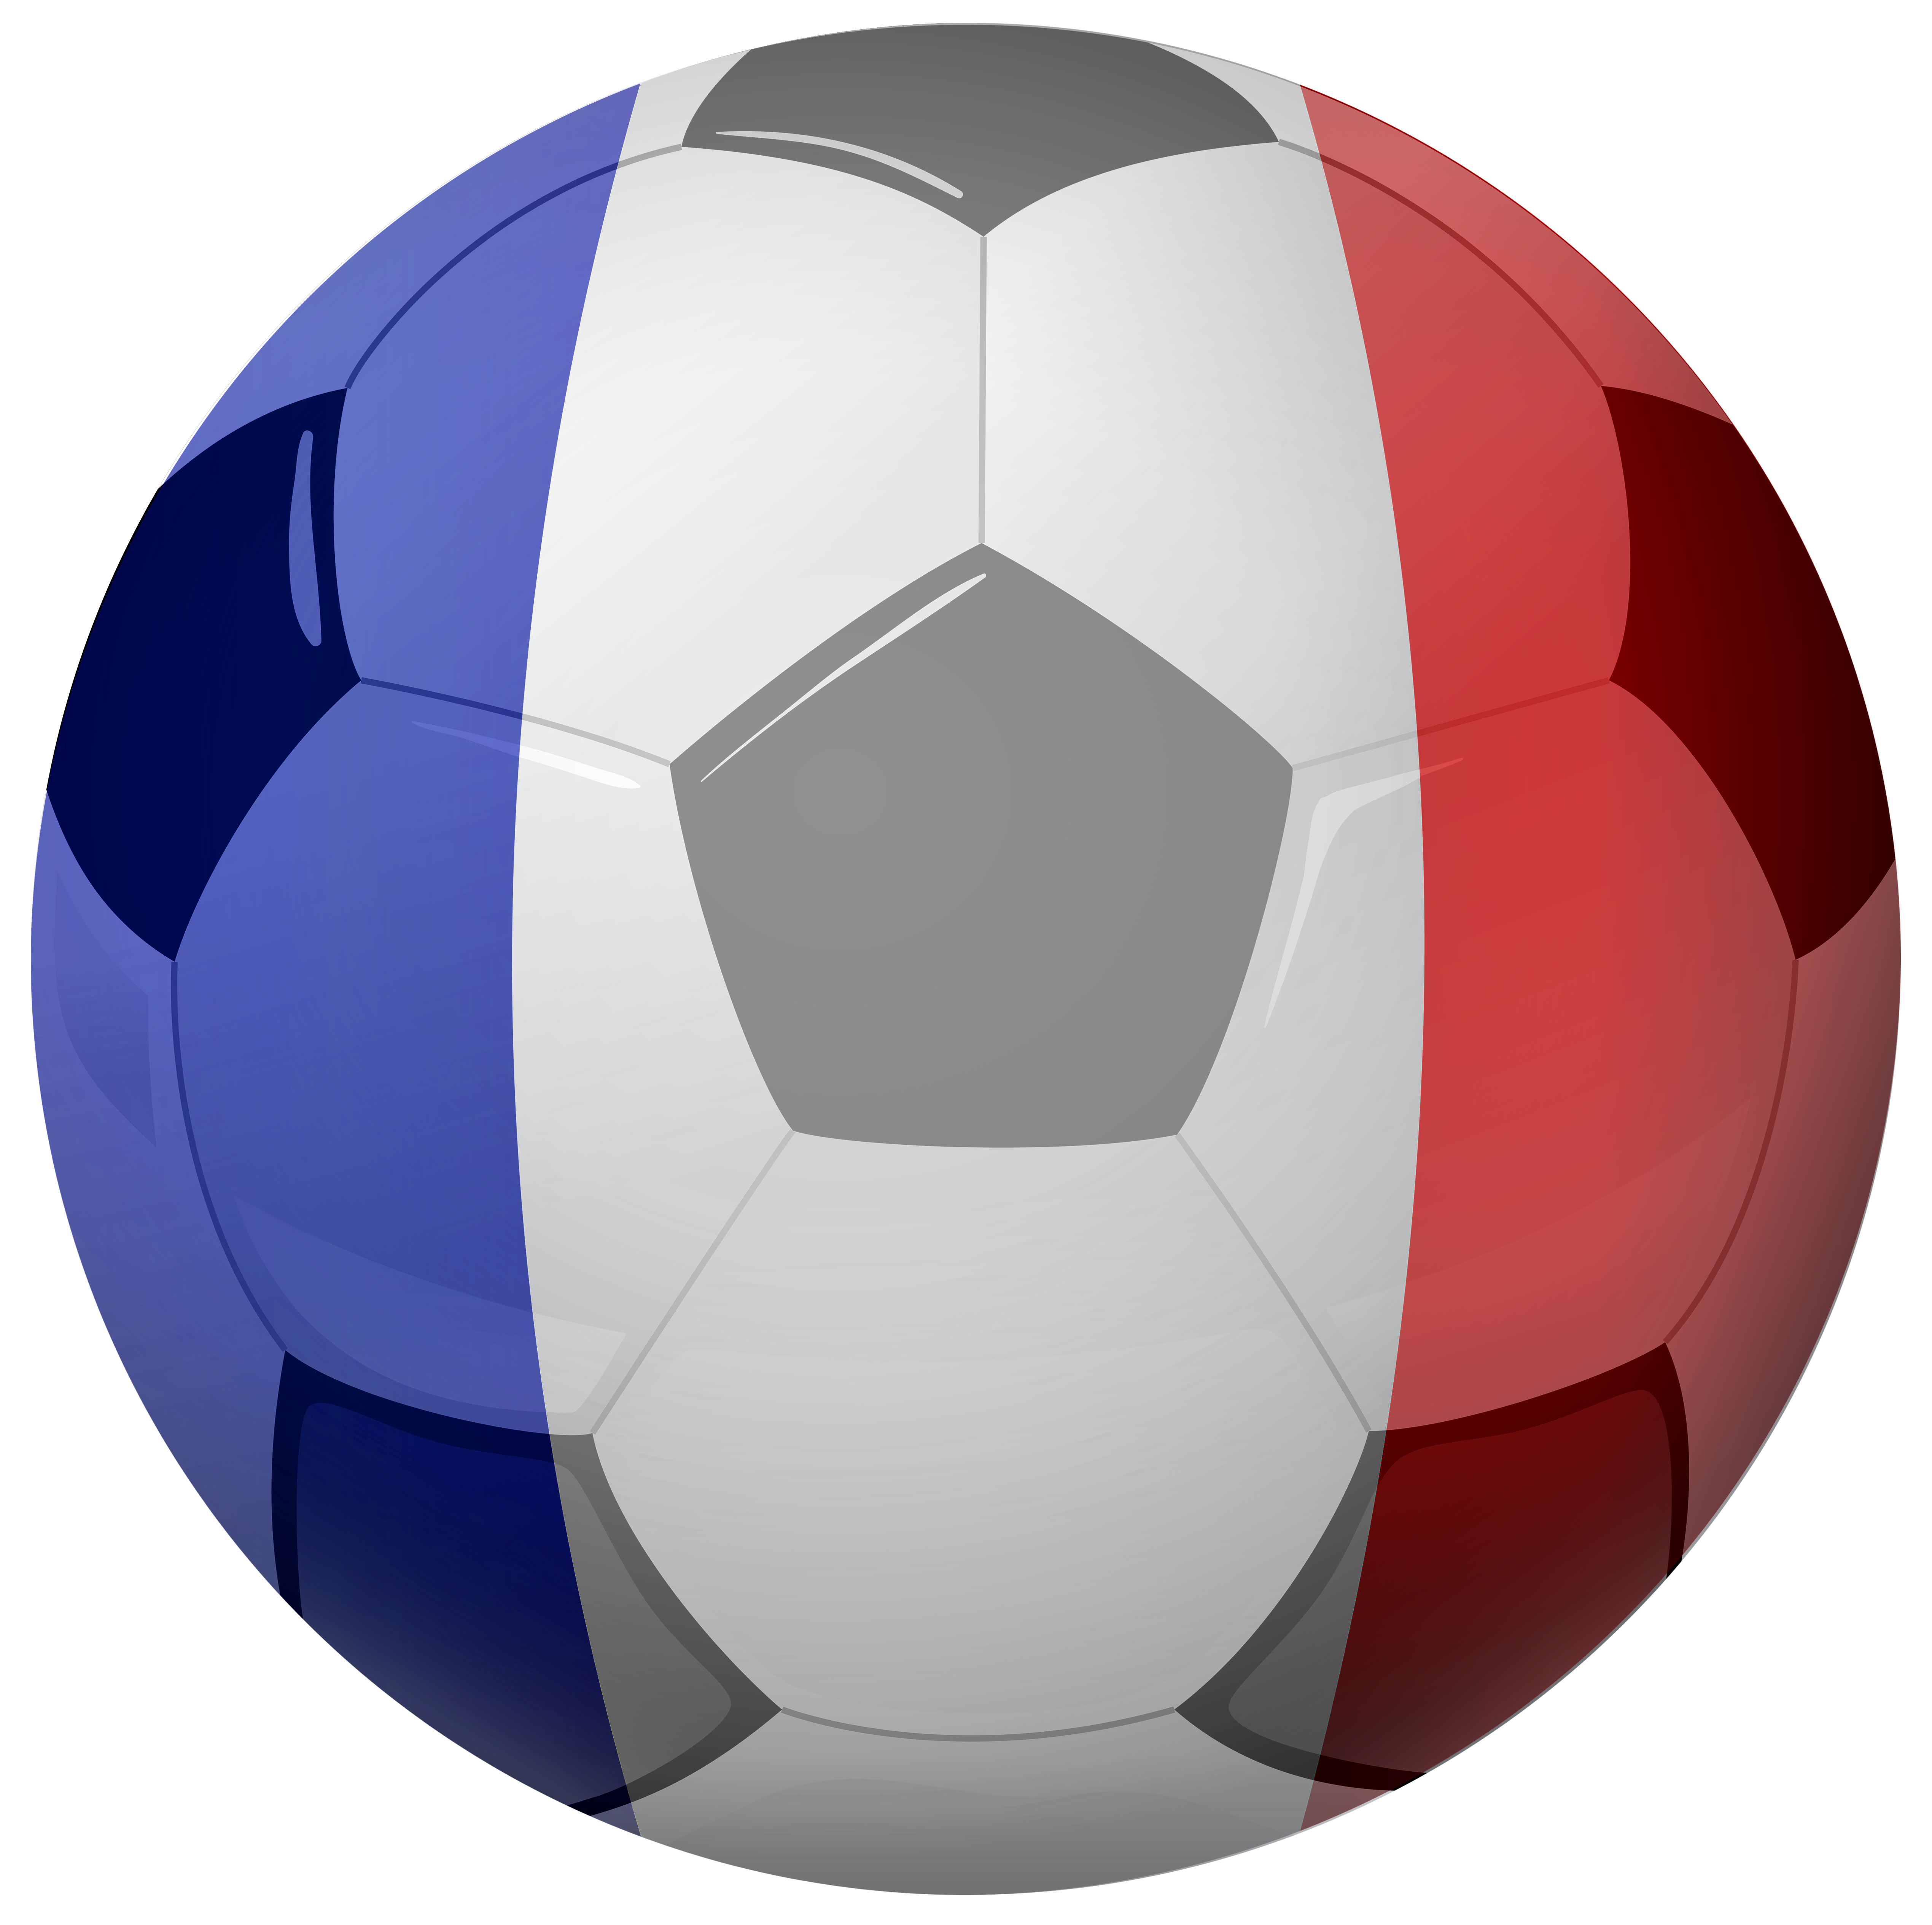 Football 2016 clipart image freeuse 2016 Euro France Ball PNG Transparent Clip Art Image | Gallery ... image freeuse